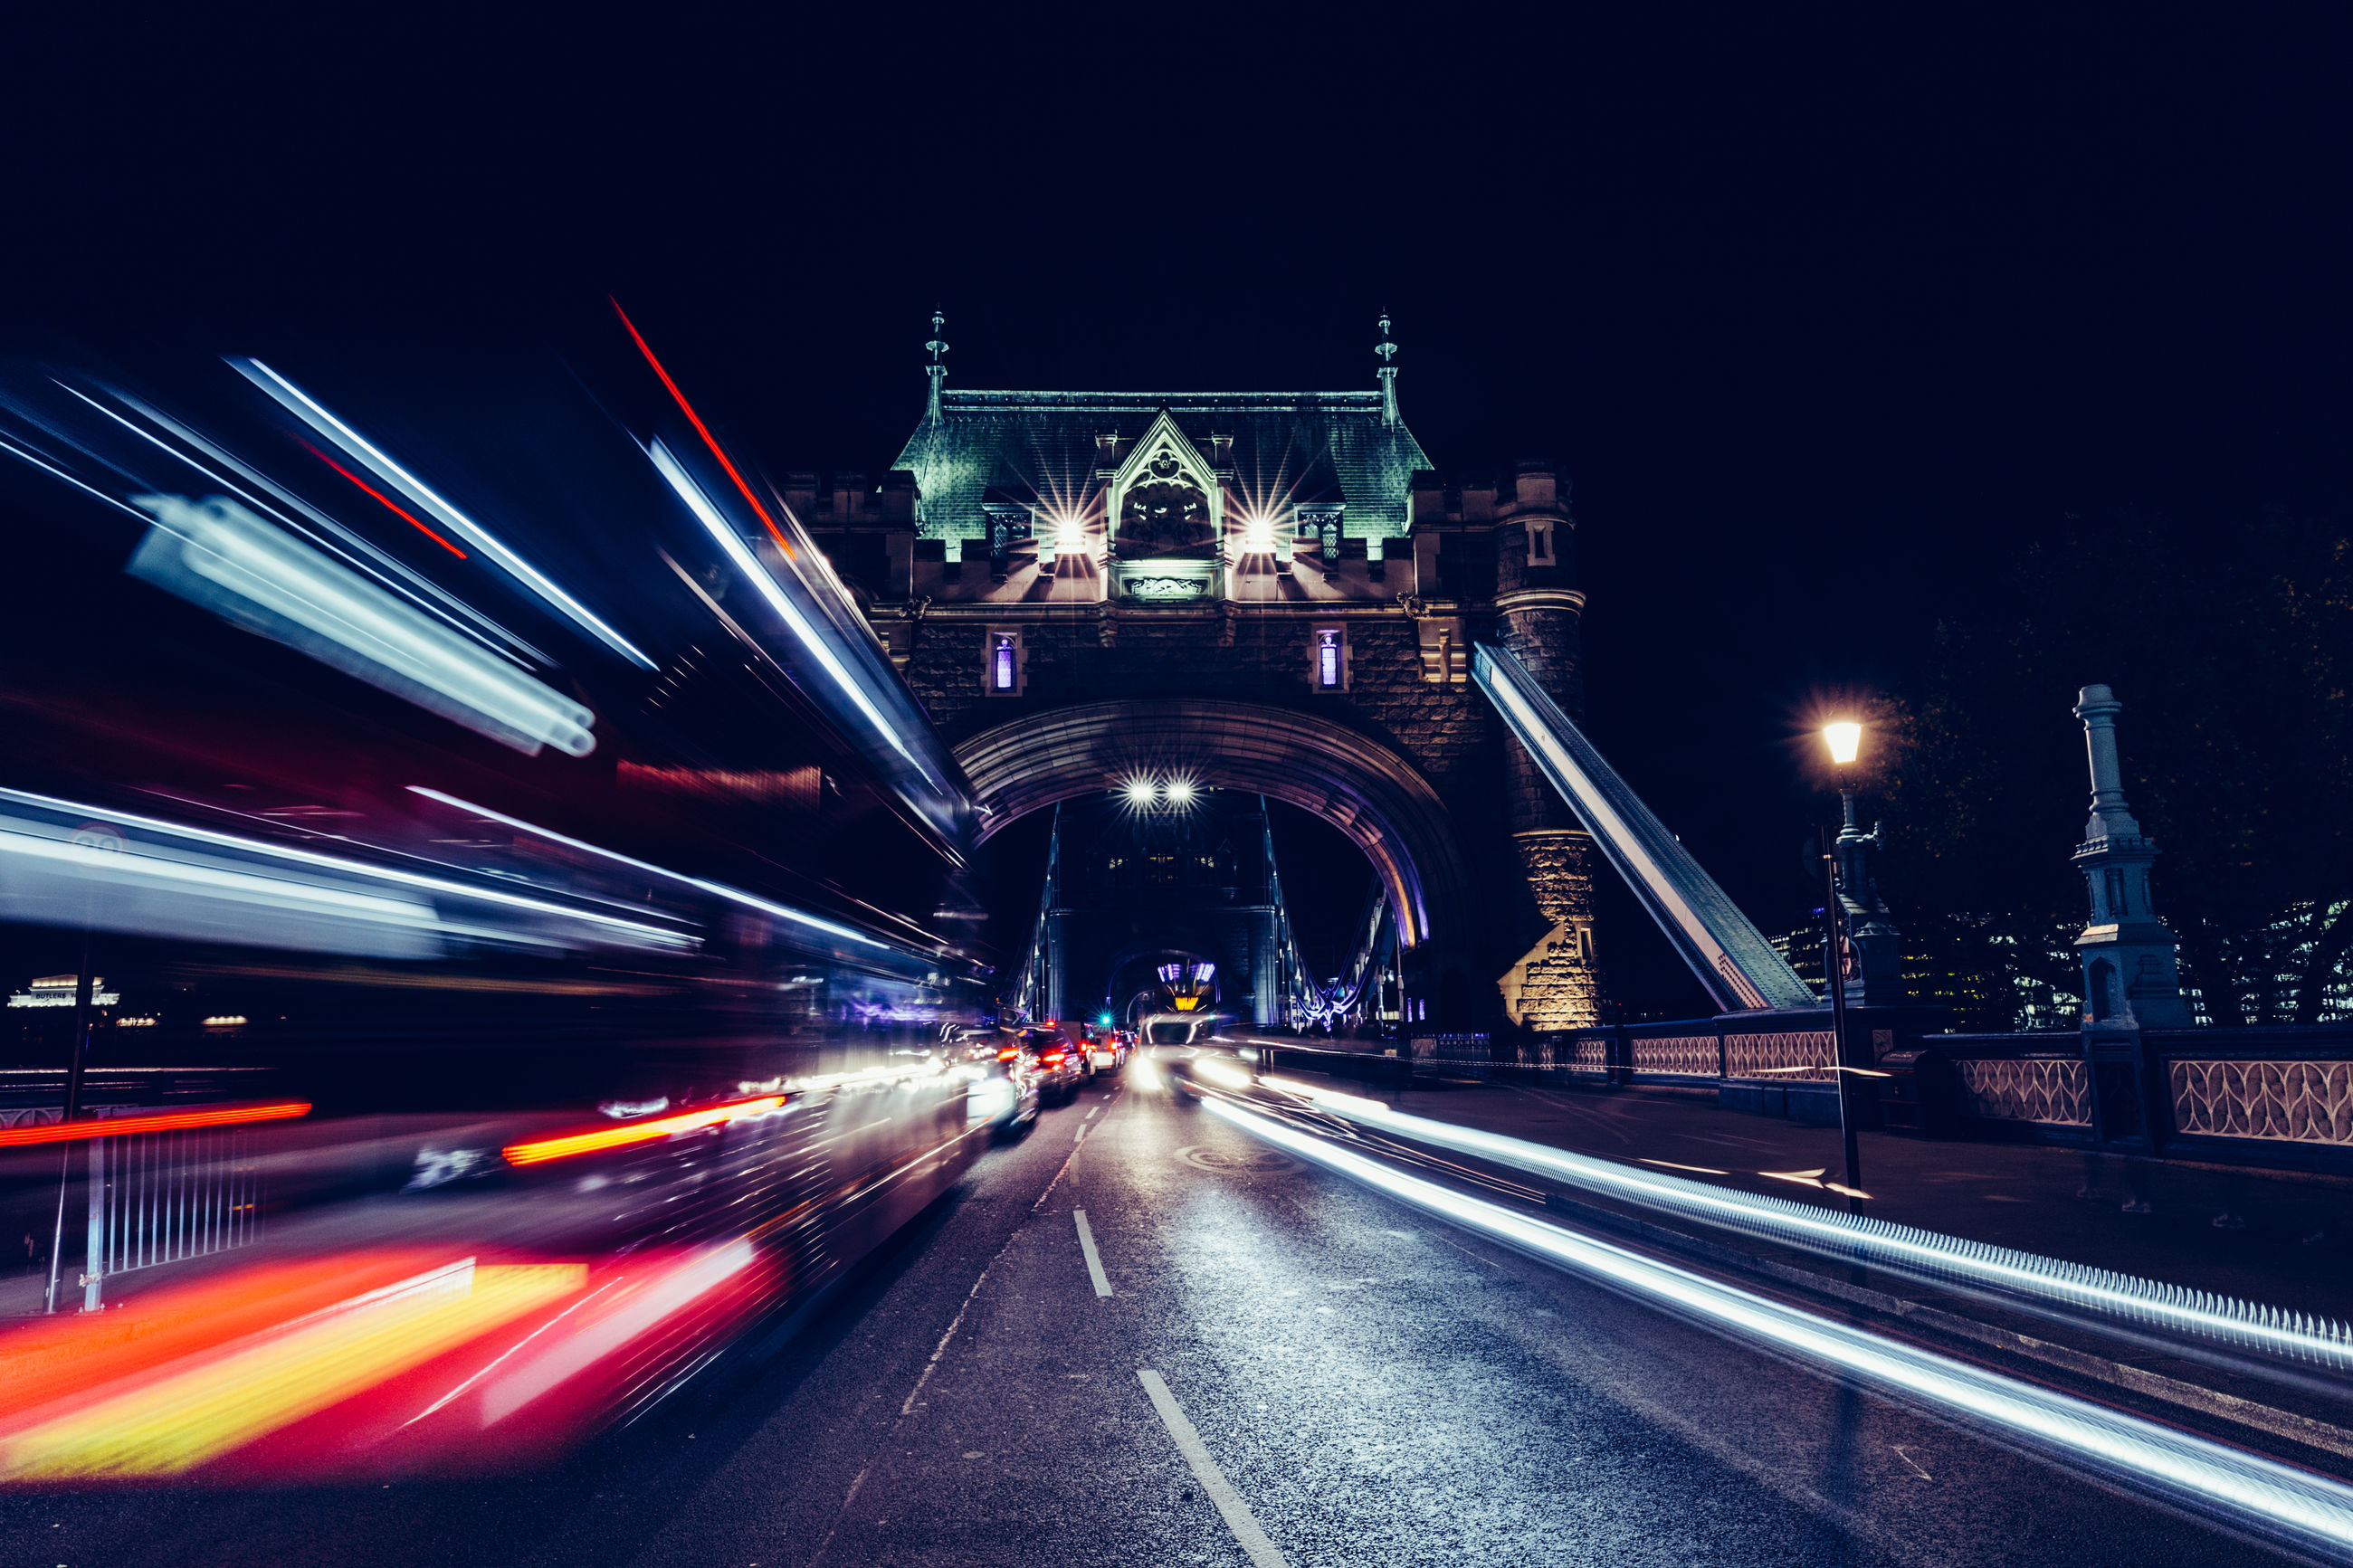 Blurred Motion Of Vehicle On Tower Bridge In City At Night